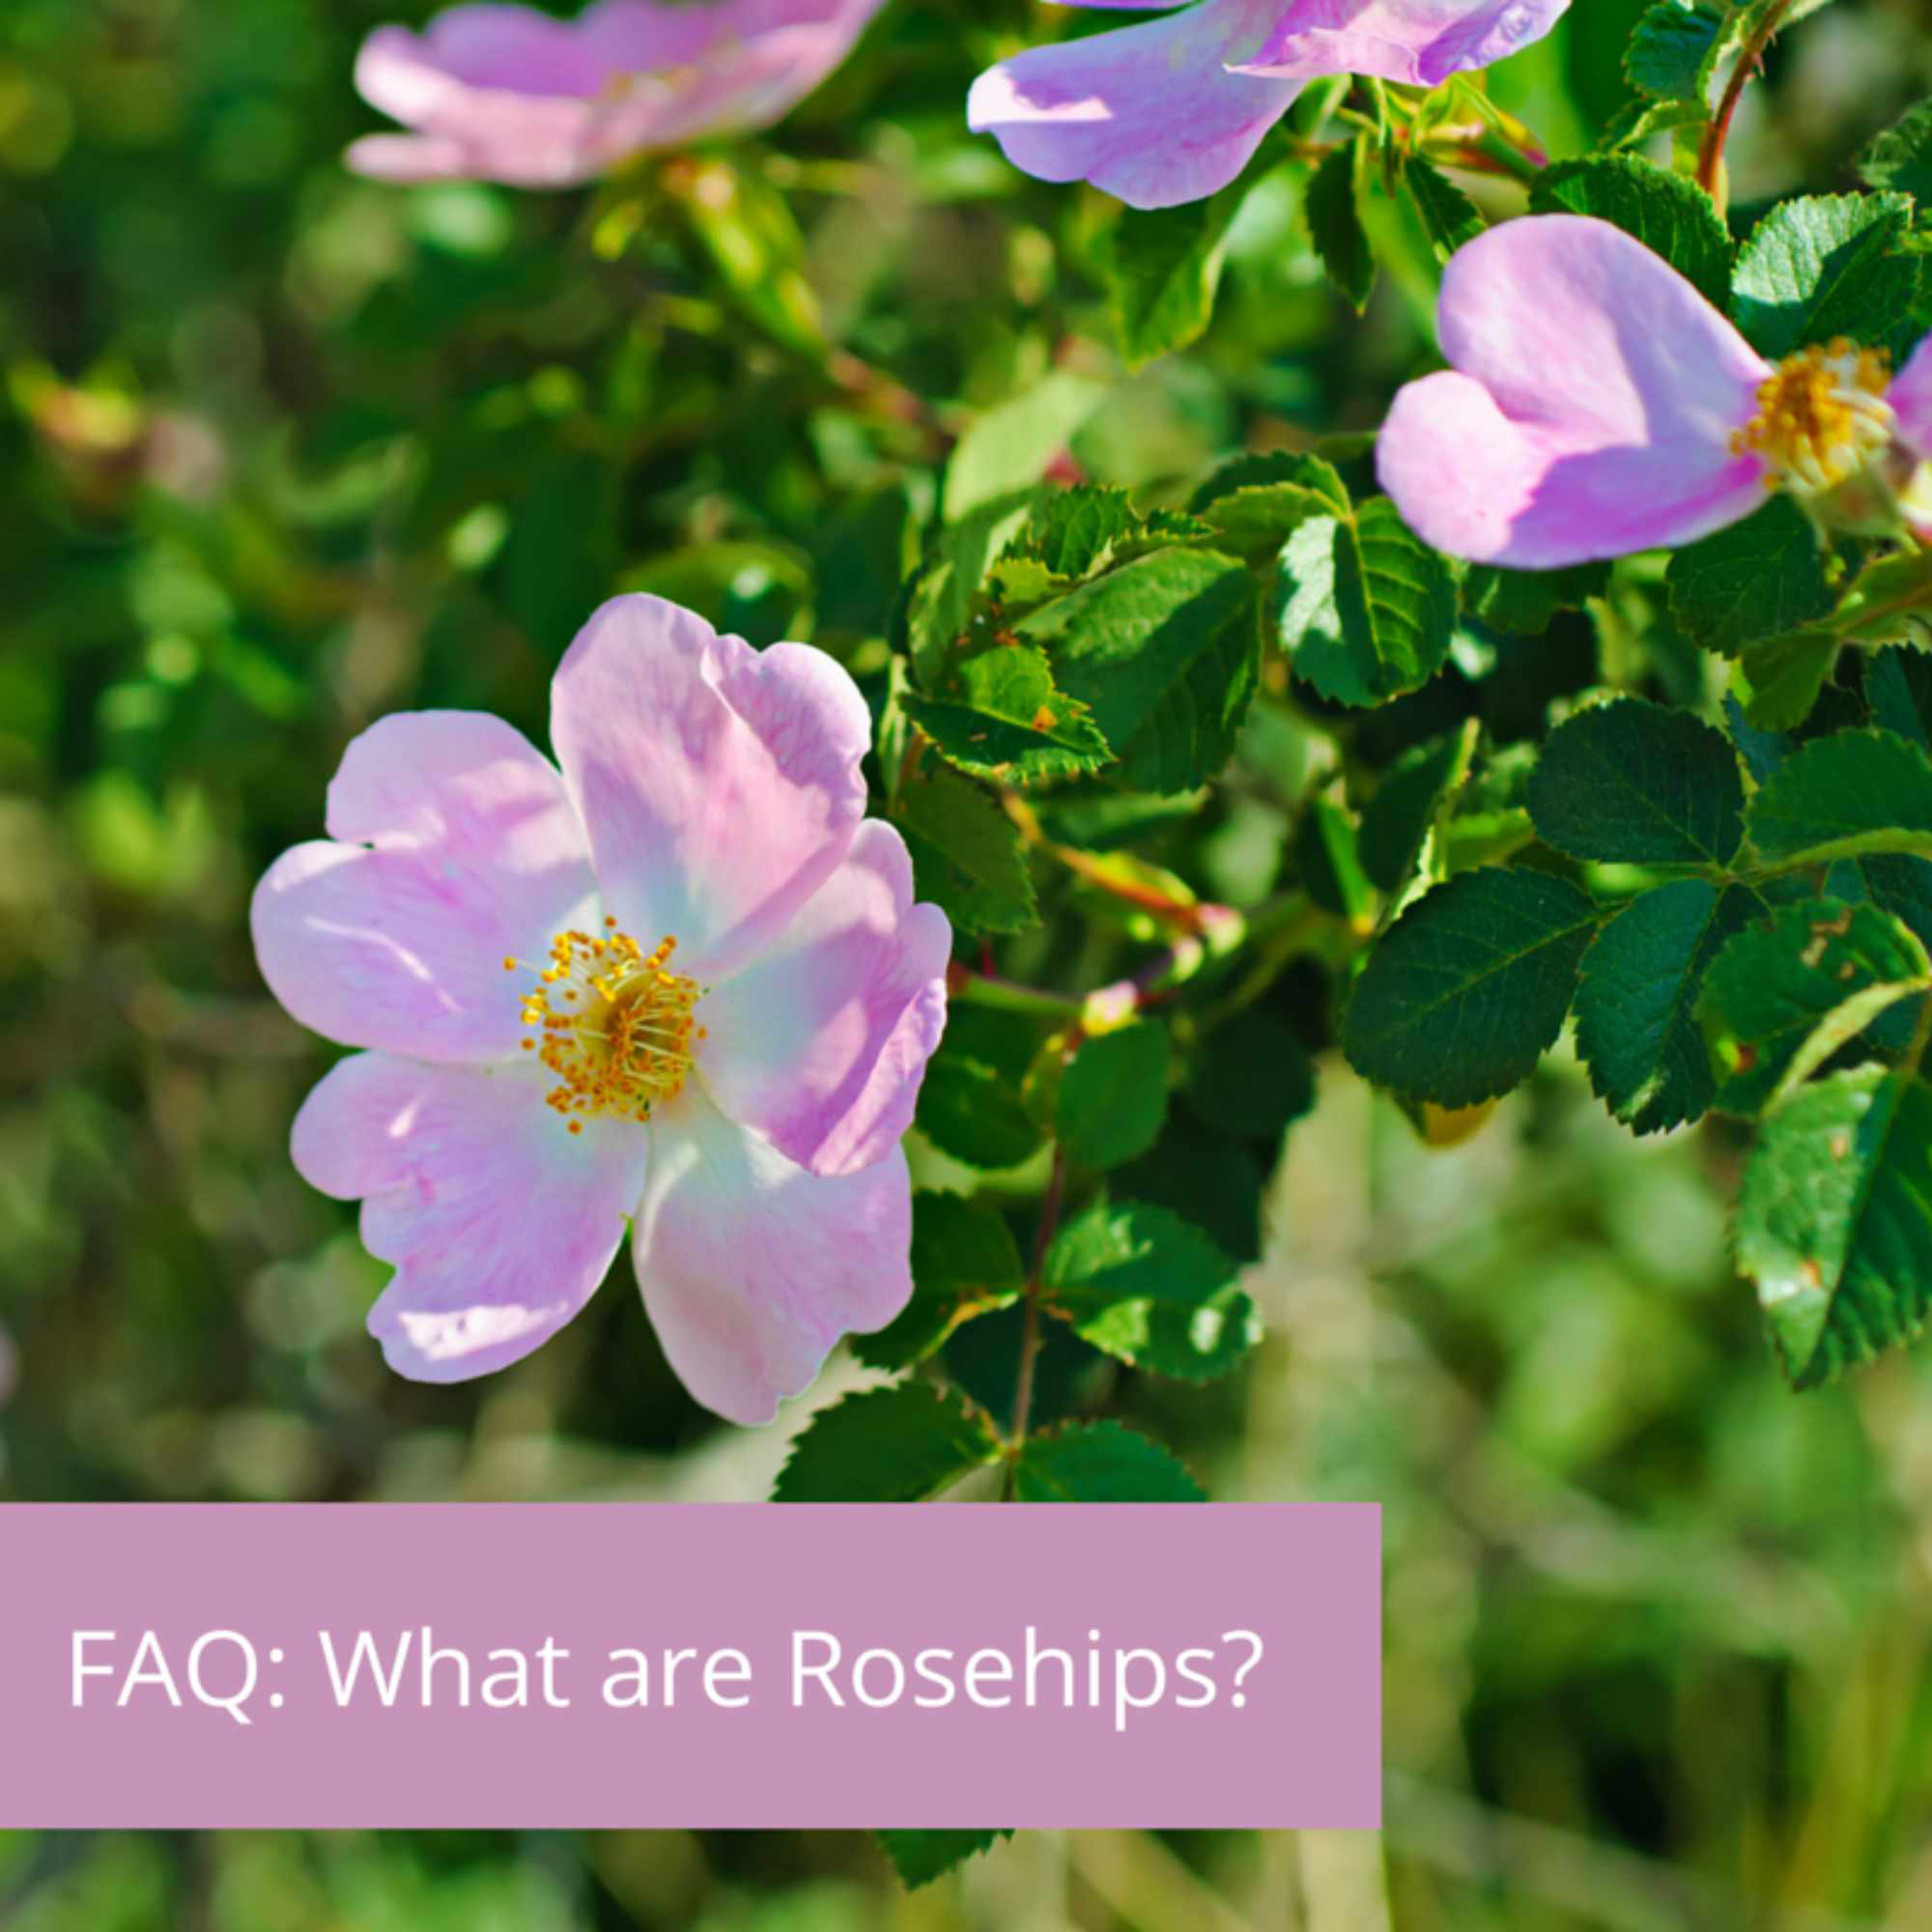 FAQ: What are rosehips?